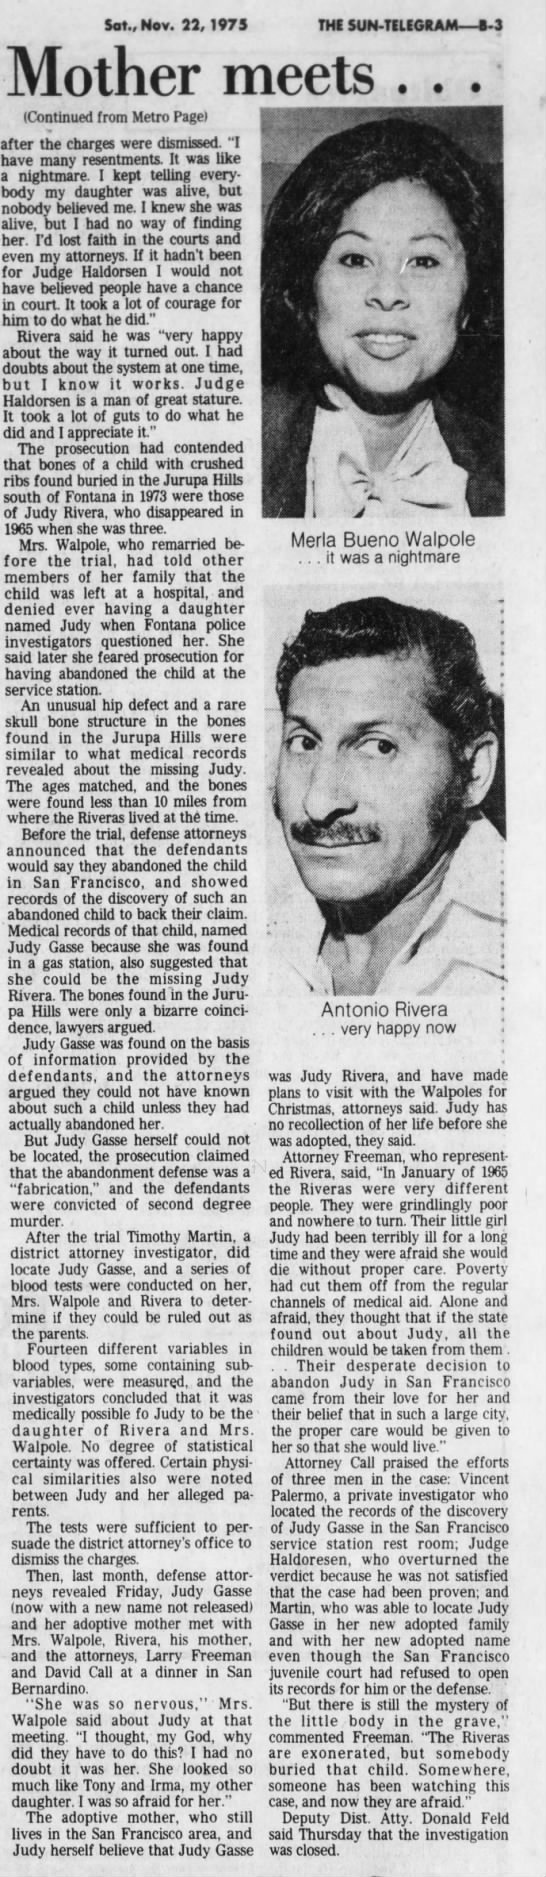 Nov 22, 1975 Judy Rivera, Page 2 - Sat., Nov. 22,1975 Mother meets . . ....